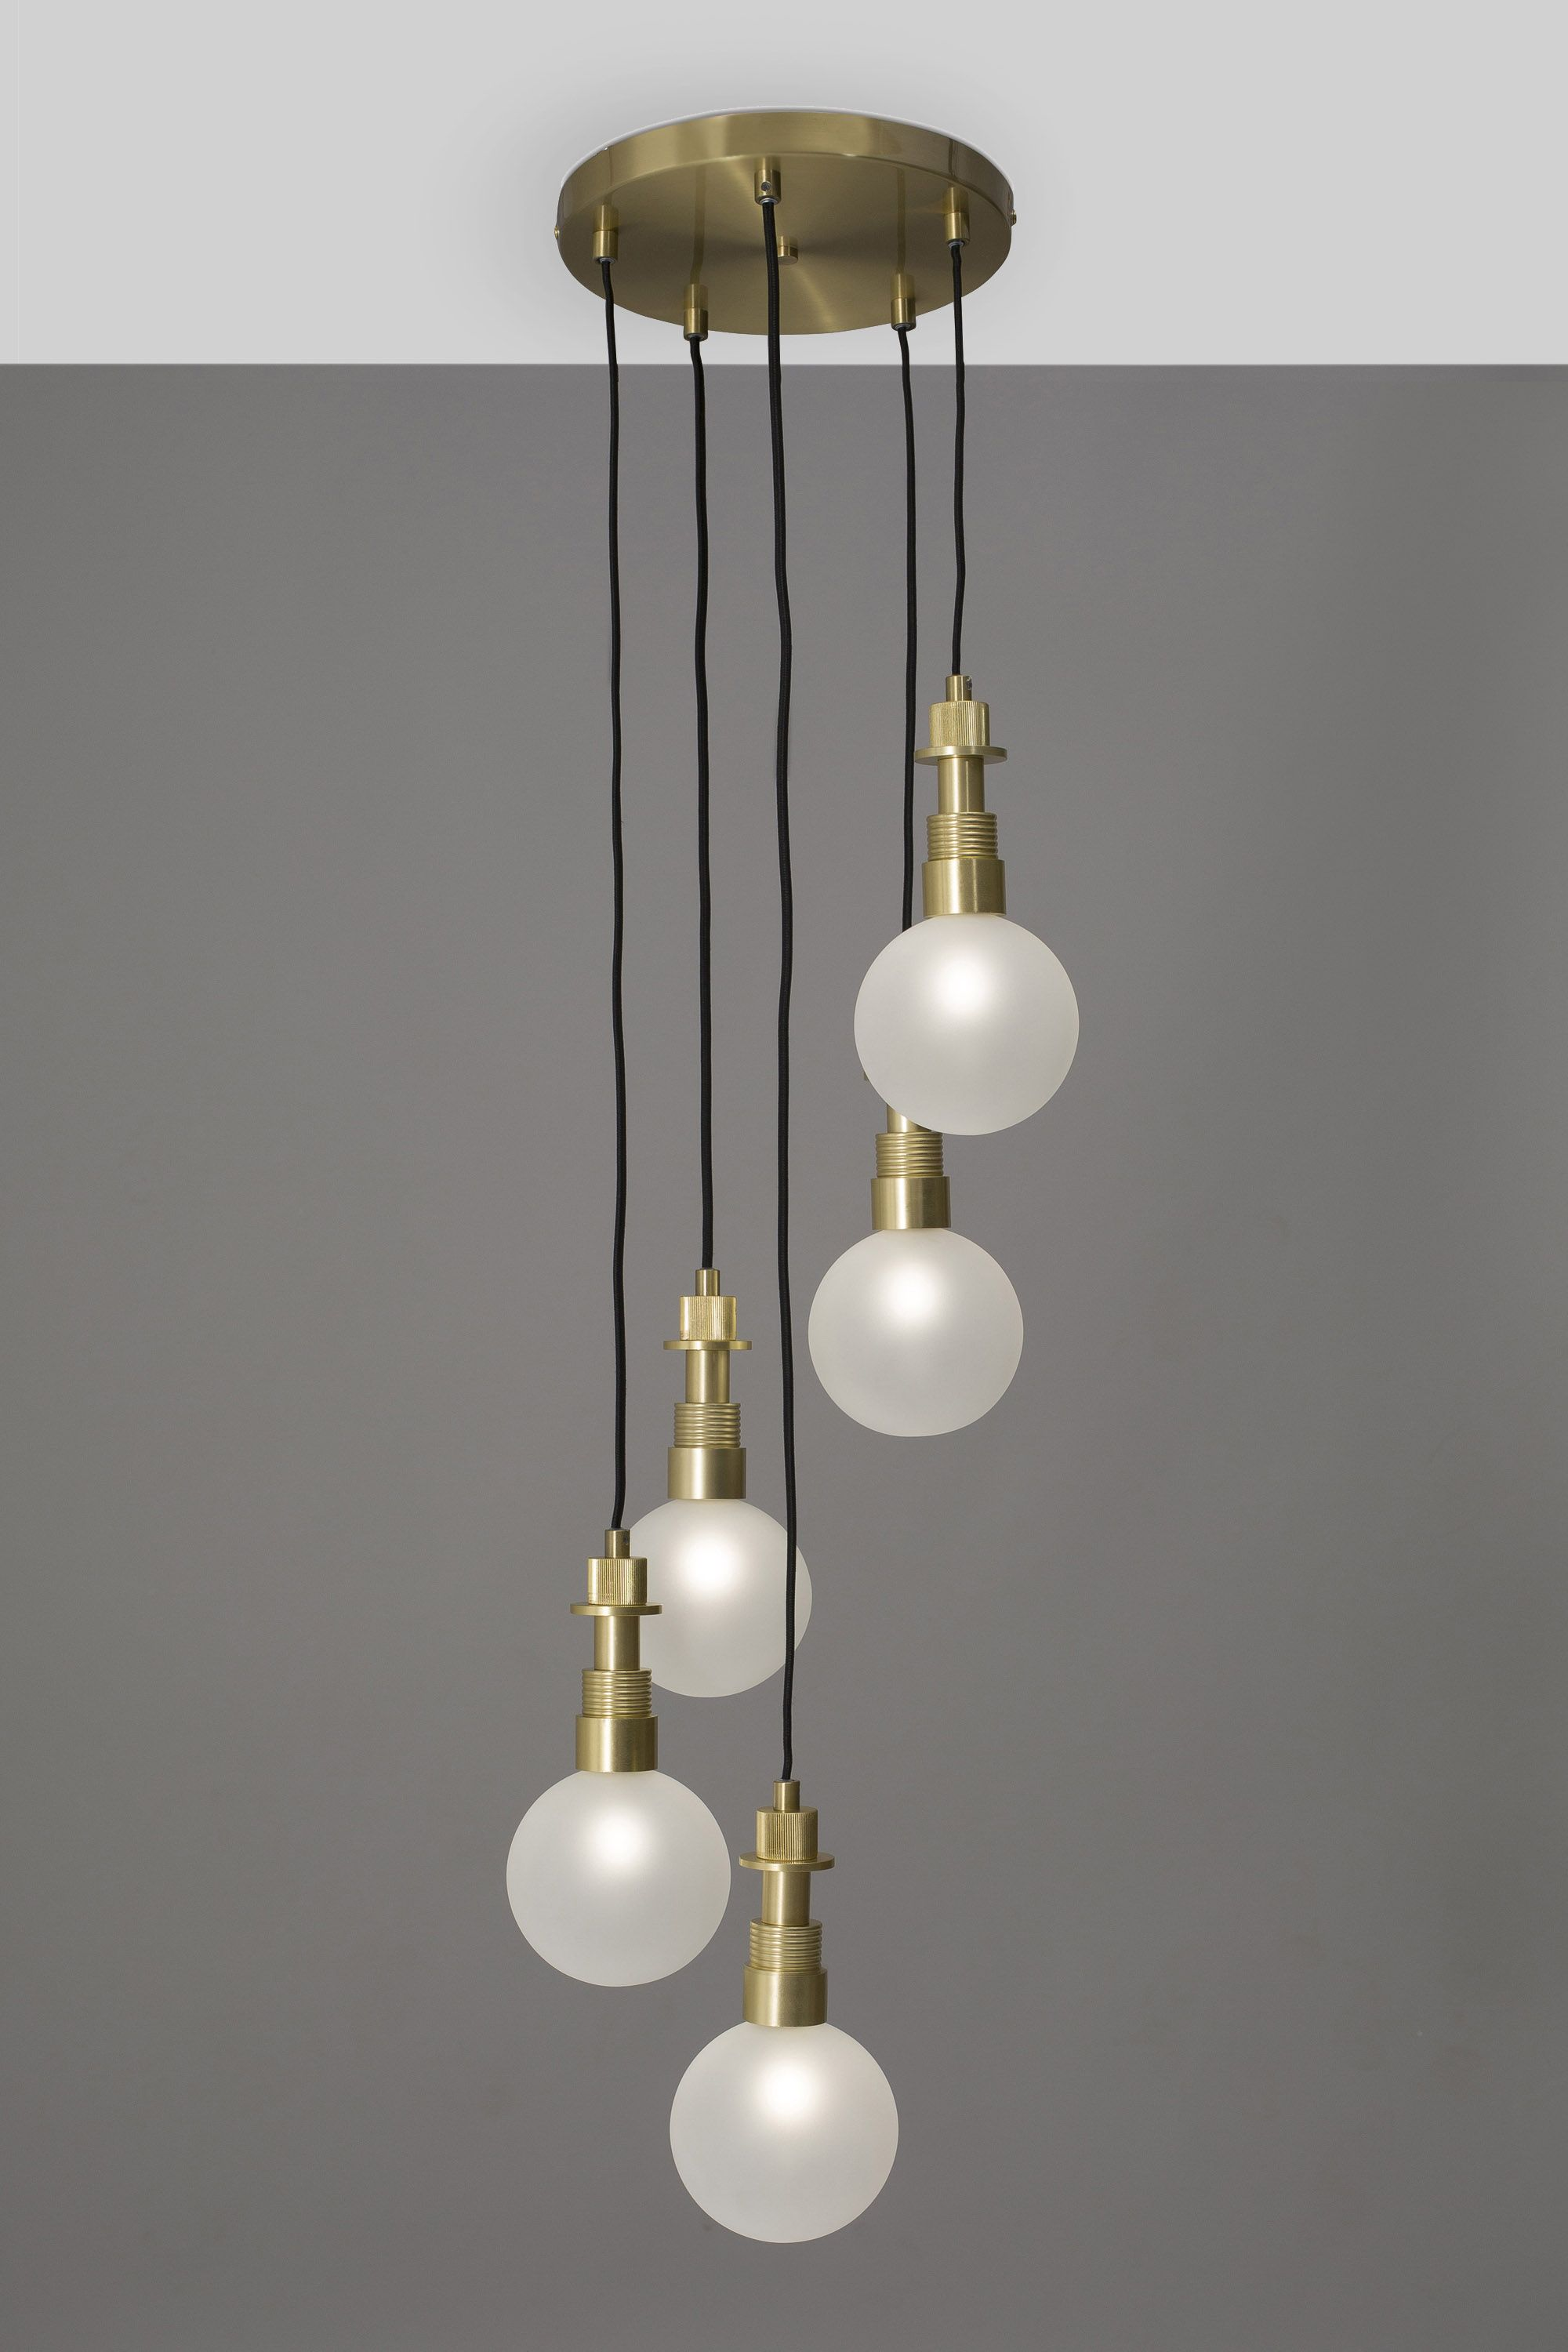 Ned cluster light brass bhs my kitchen remodel pinterest ned cluster light brass bhs ceiling lights saleceiling aloadofball Choice Image